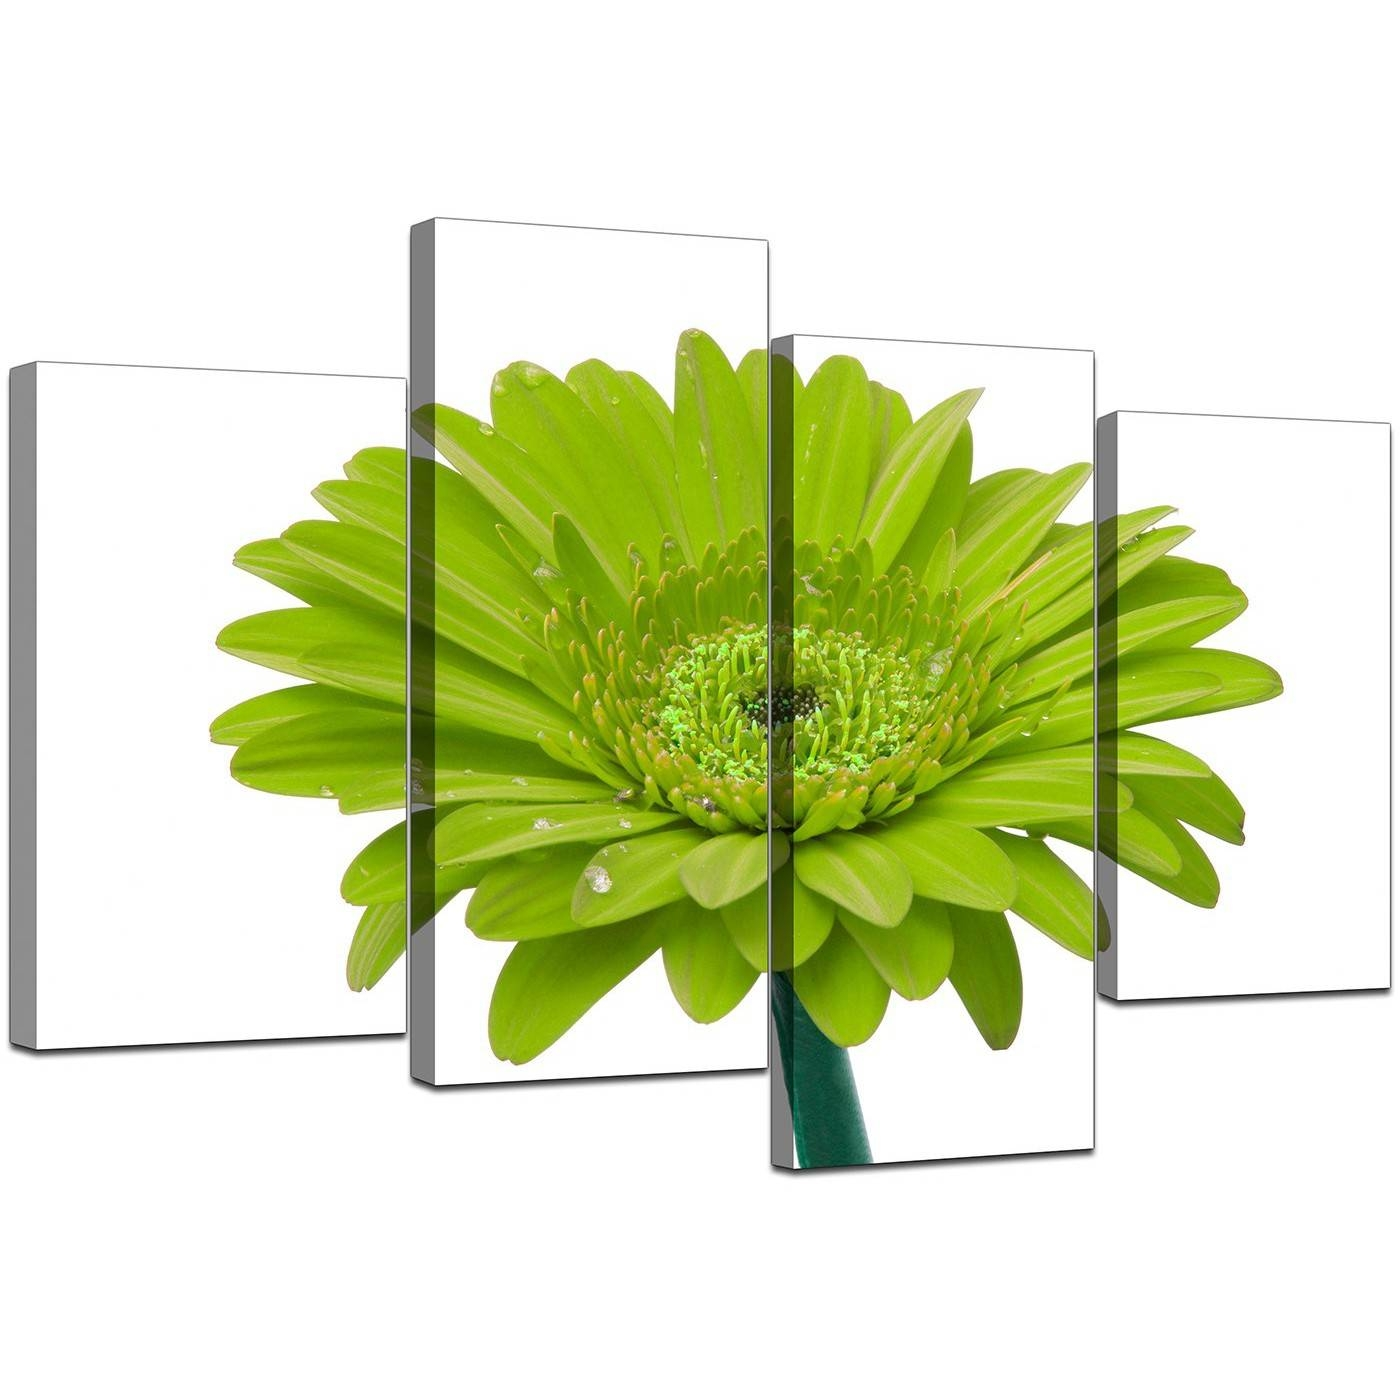 Canvas Wall Art Of Flower In Lime Green For Your Living Room Regarding 2018 Green Canvas Wall Art (View 11 of 20)